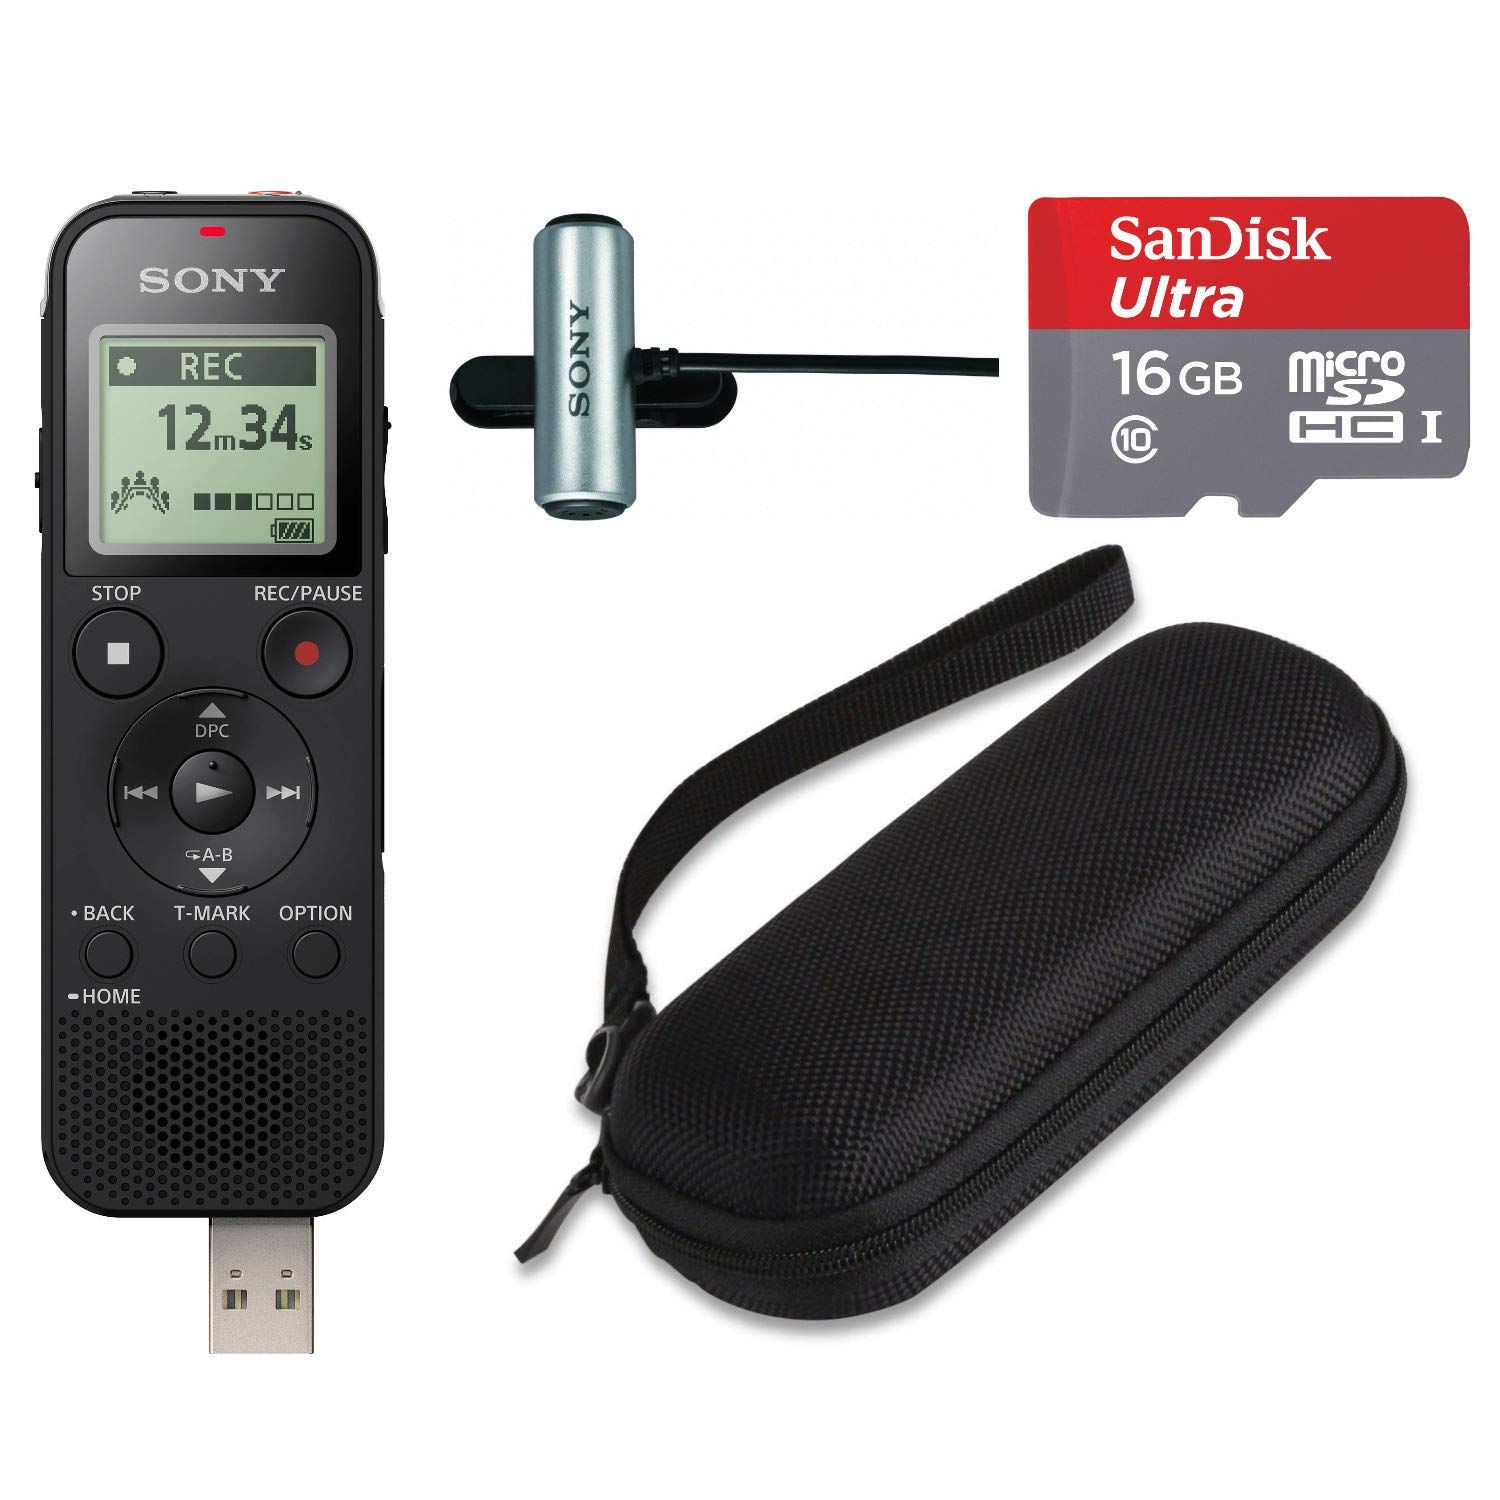 Sony ICD-PX470 Stereo Digital Voice Recorder with Built-in USB Mic, 16GB microSD, and Hard Carrying case